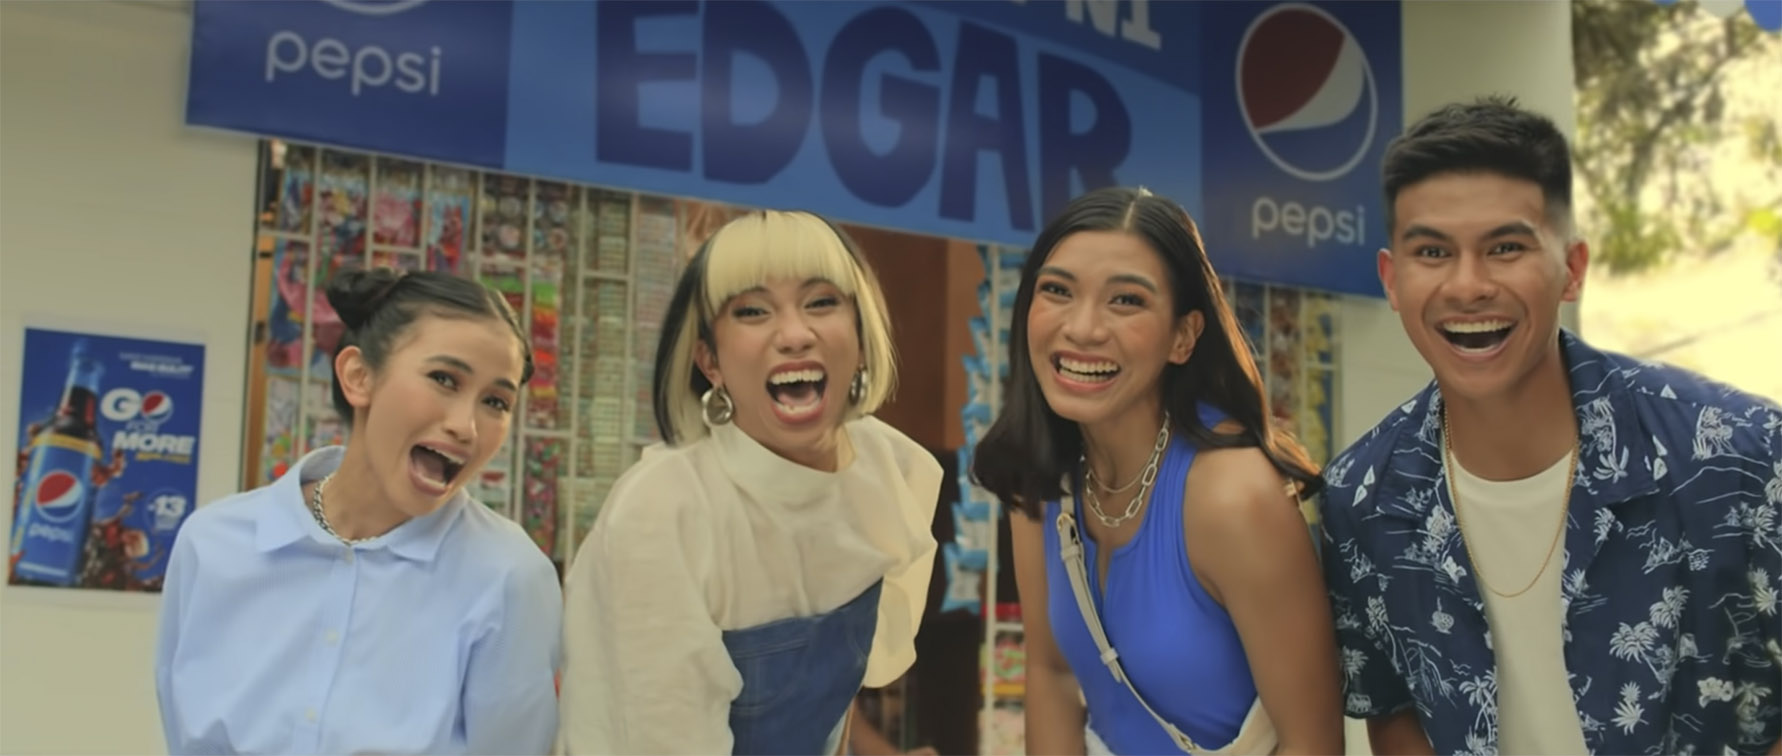 BBDO Guerrero Philippines and Pepsi launch No More Disappointments campaign to address frozen food mix-ups